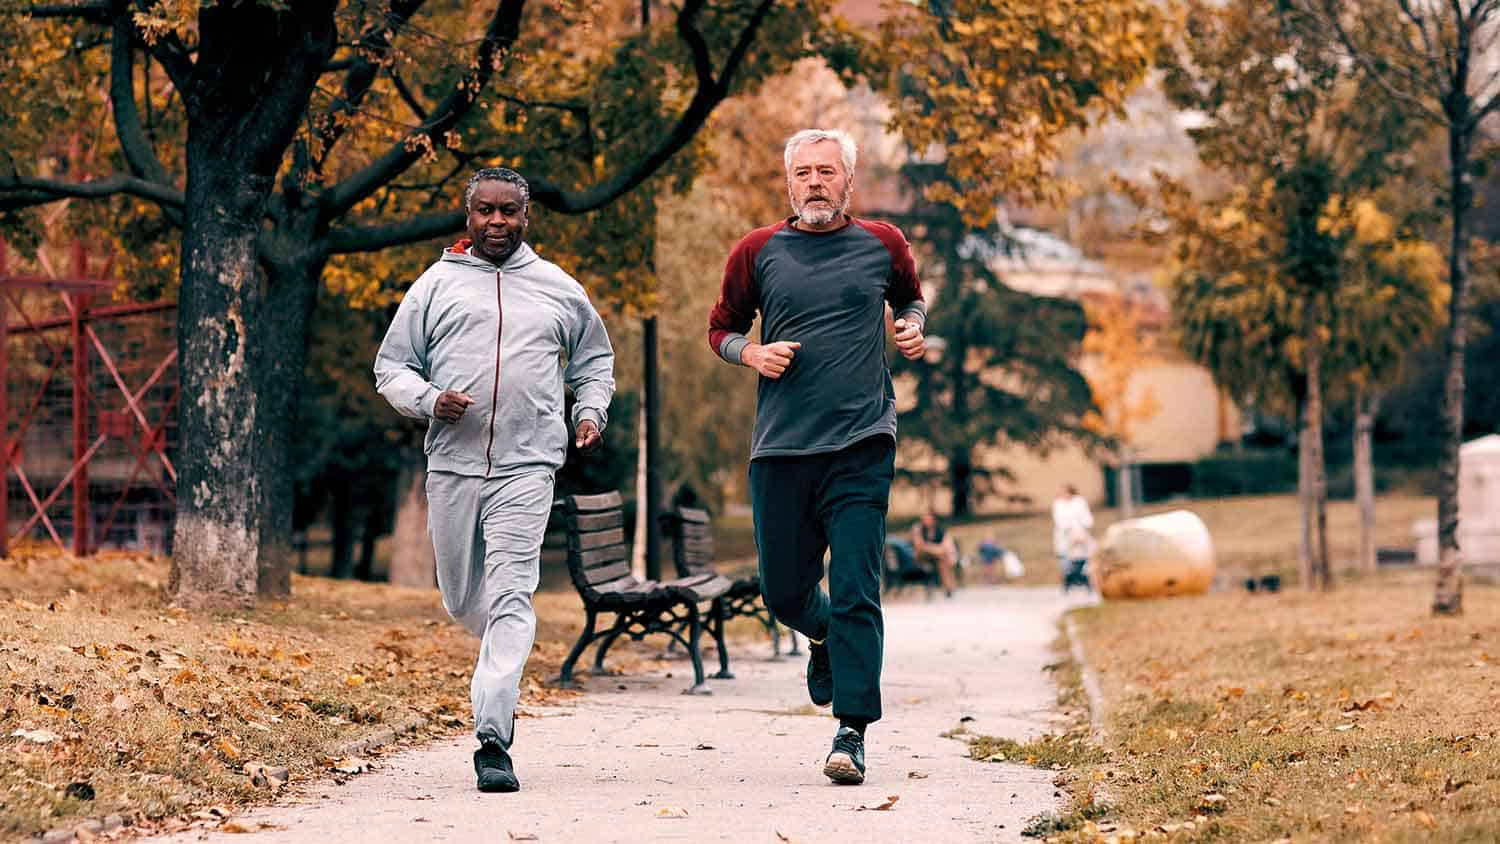 Two older men jogging through a park in early autumn